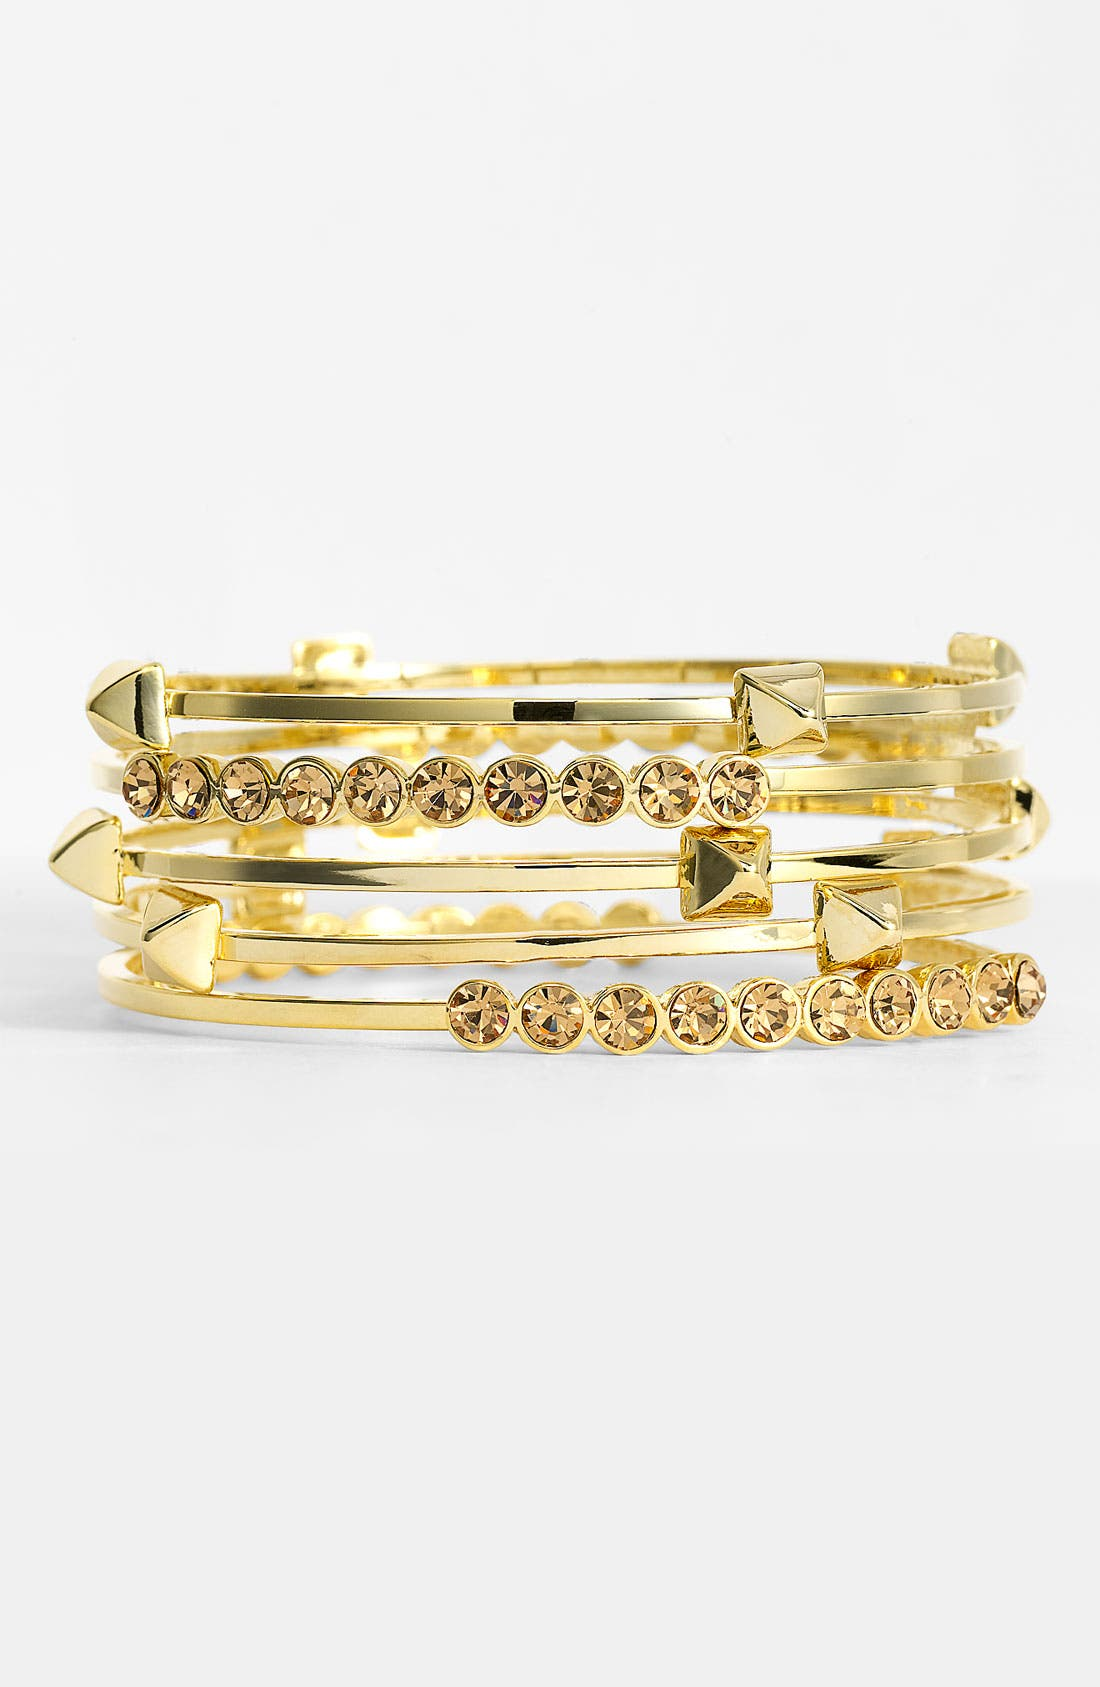 Alternate Image 1 Selected - Vince Camuto 'Basics' Stud & Crystal Bangles (Set of 5)